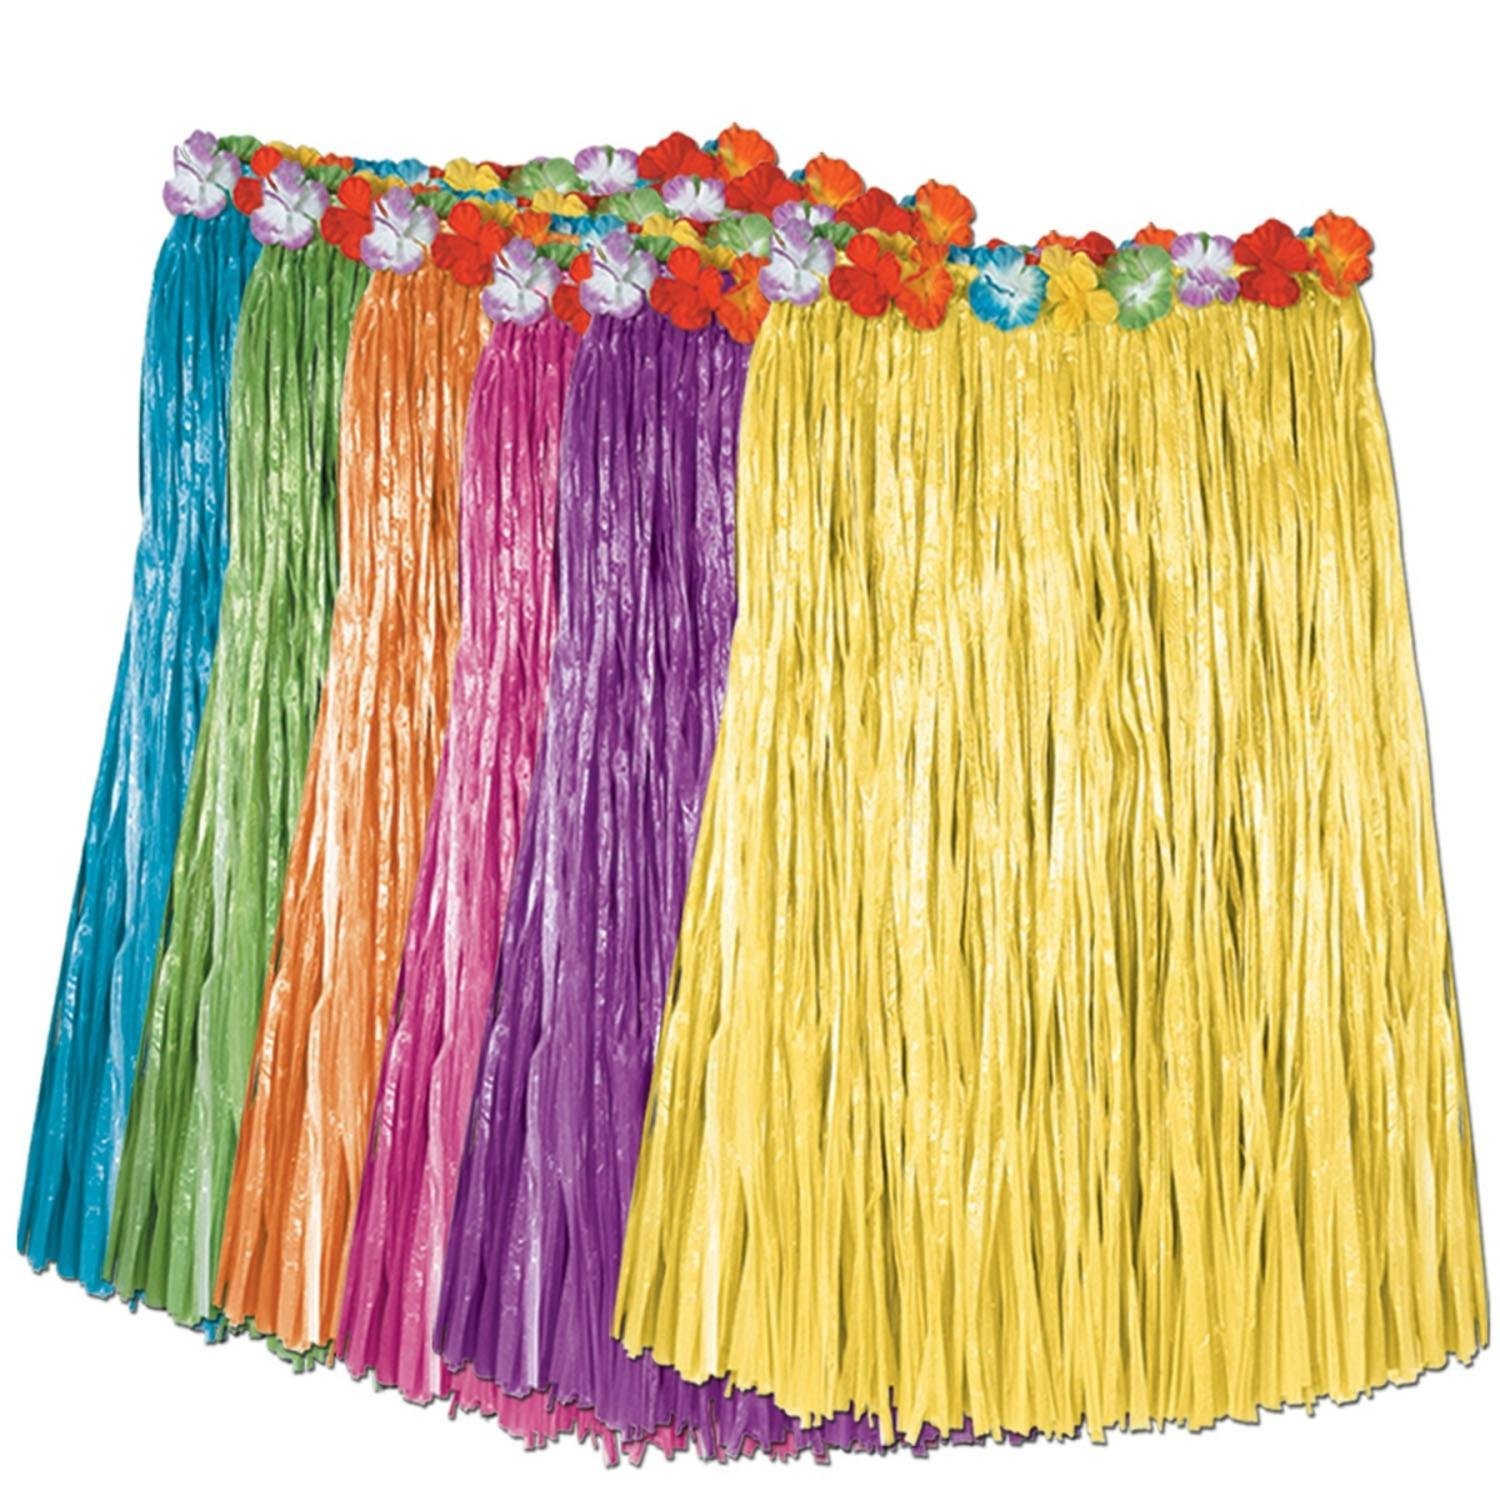 Club Pack of 12 Tropical Multi-Colored Adult Sized Artificial Grass Hula Skirts 36'' by Party Central